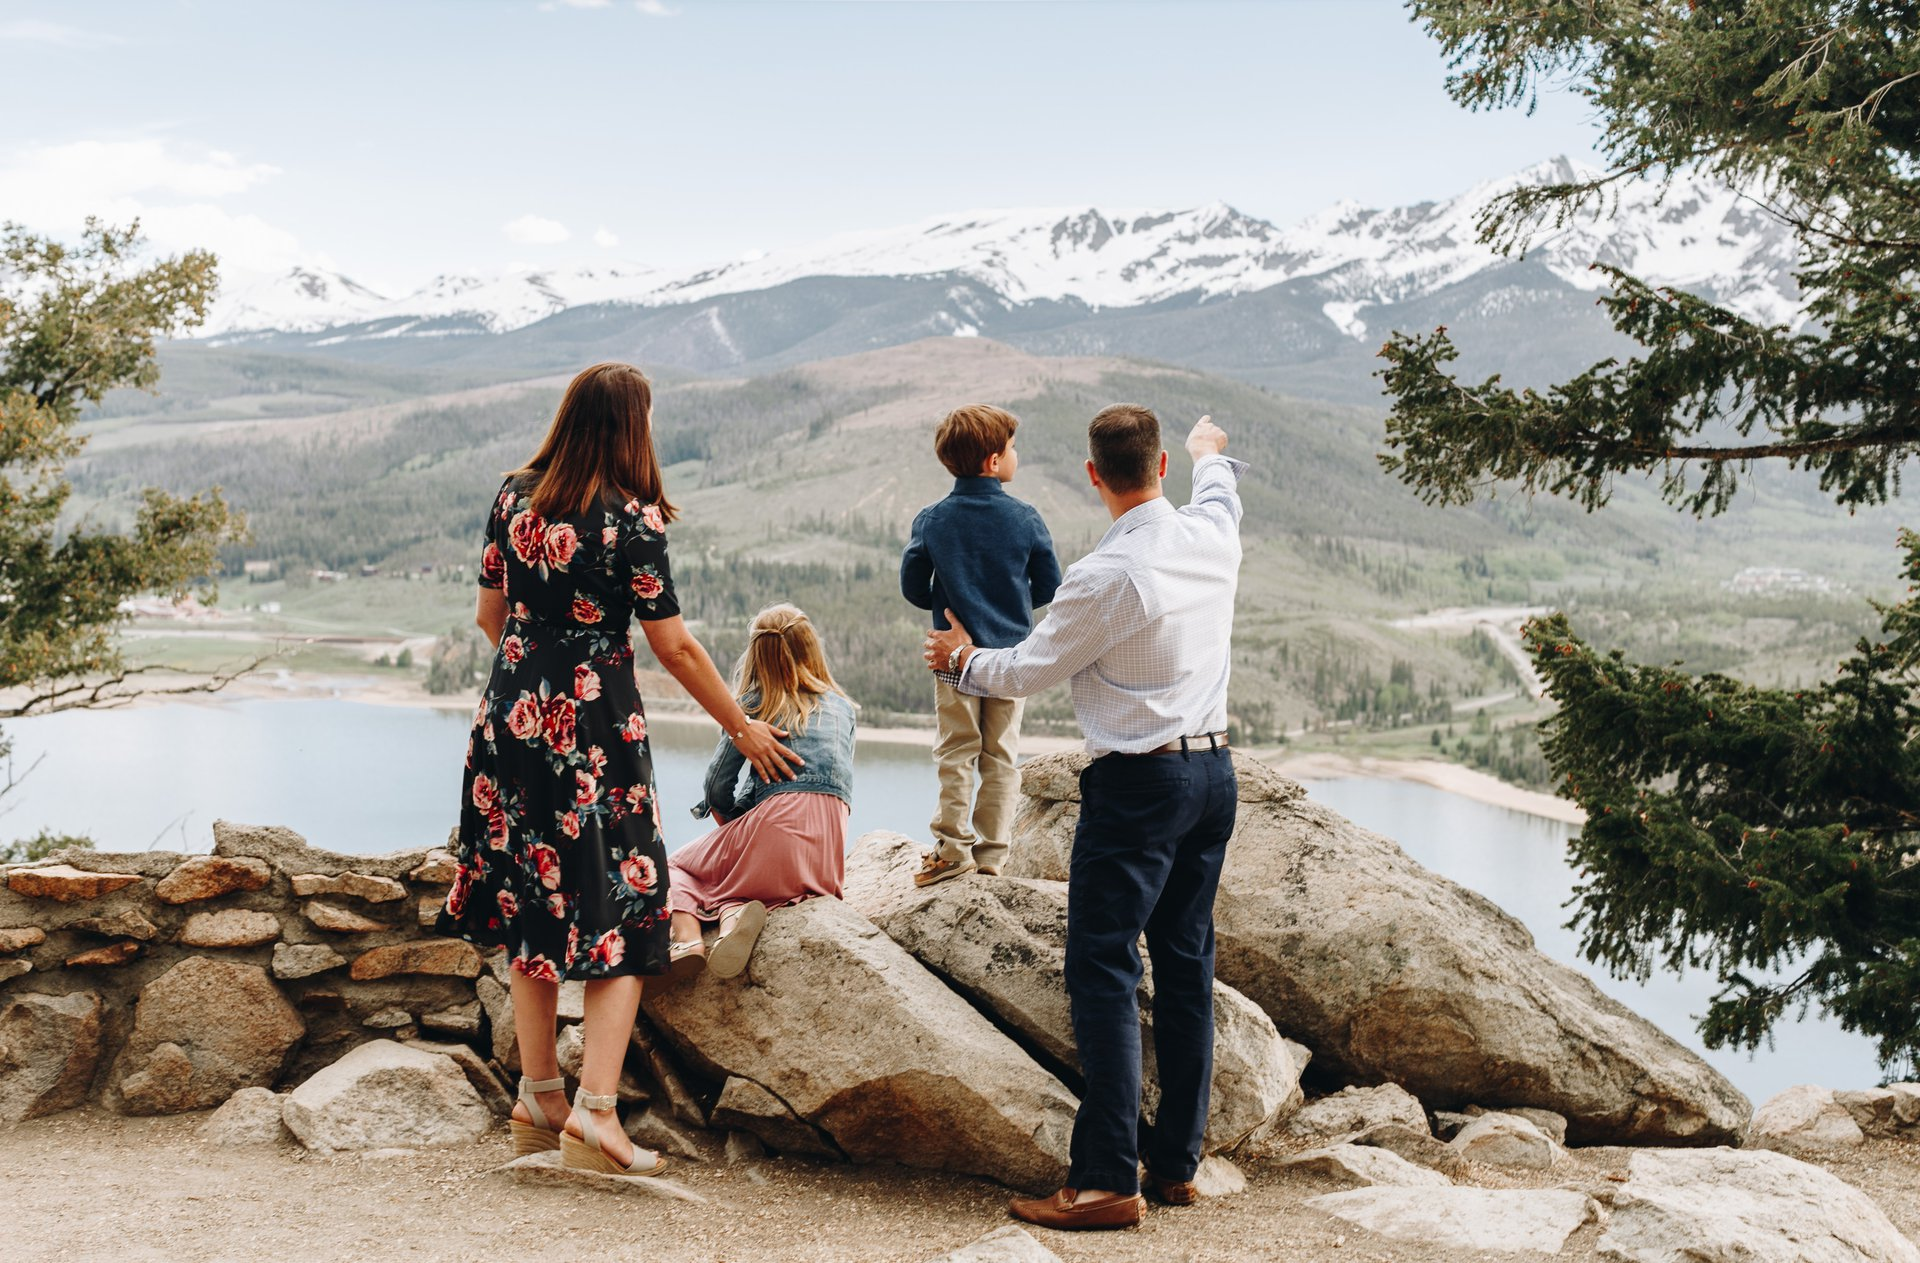 Breckenridge-United States-travel-story-Flytographer-14